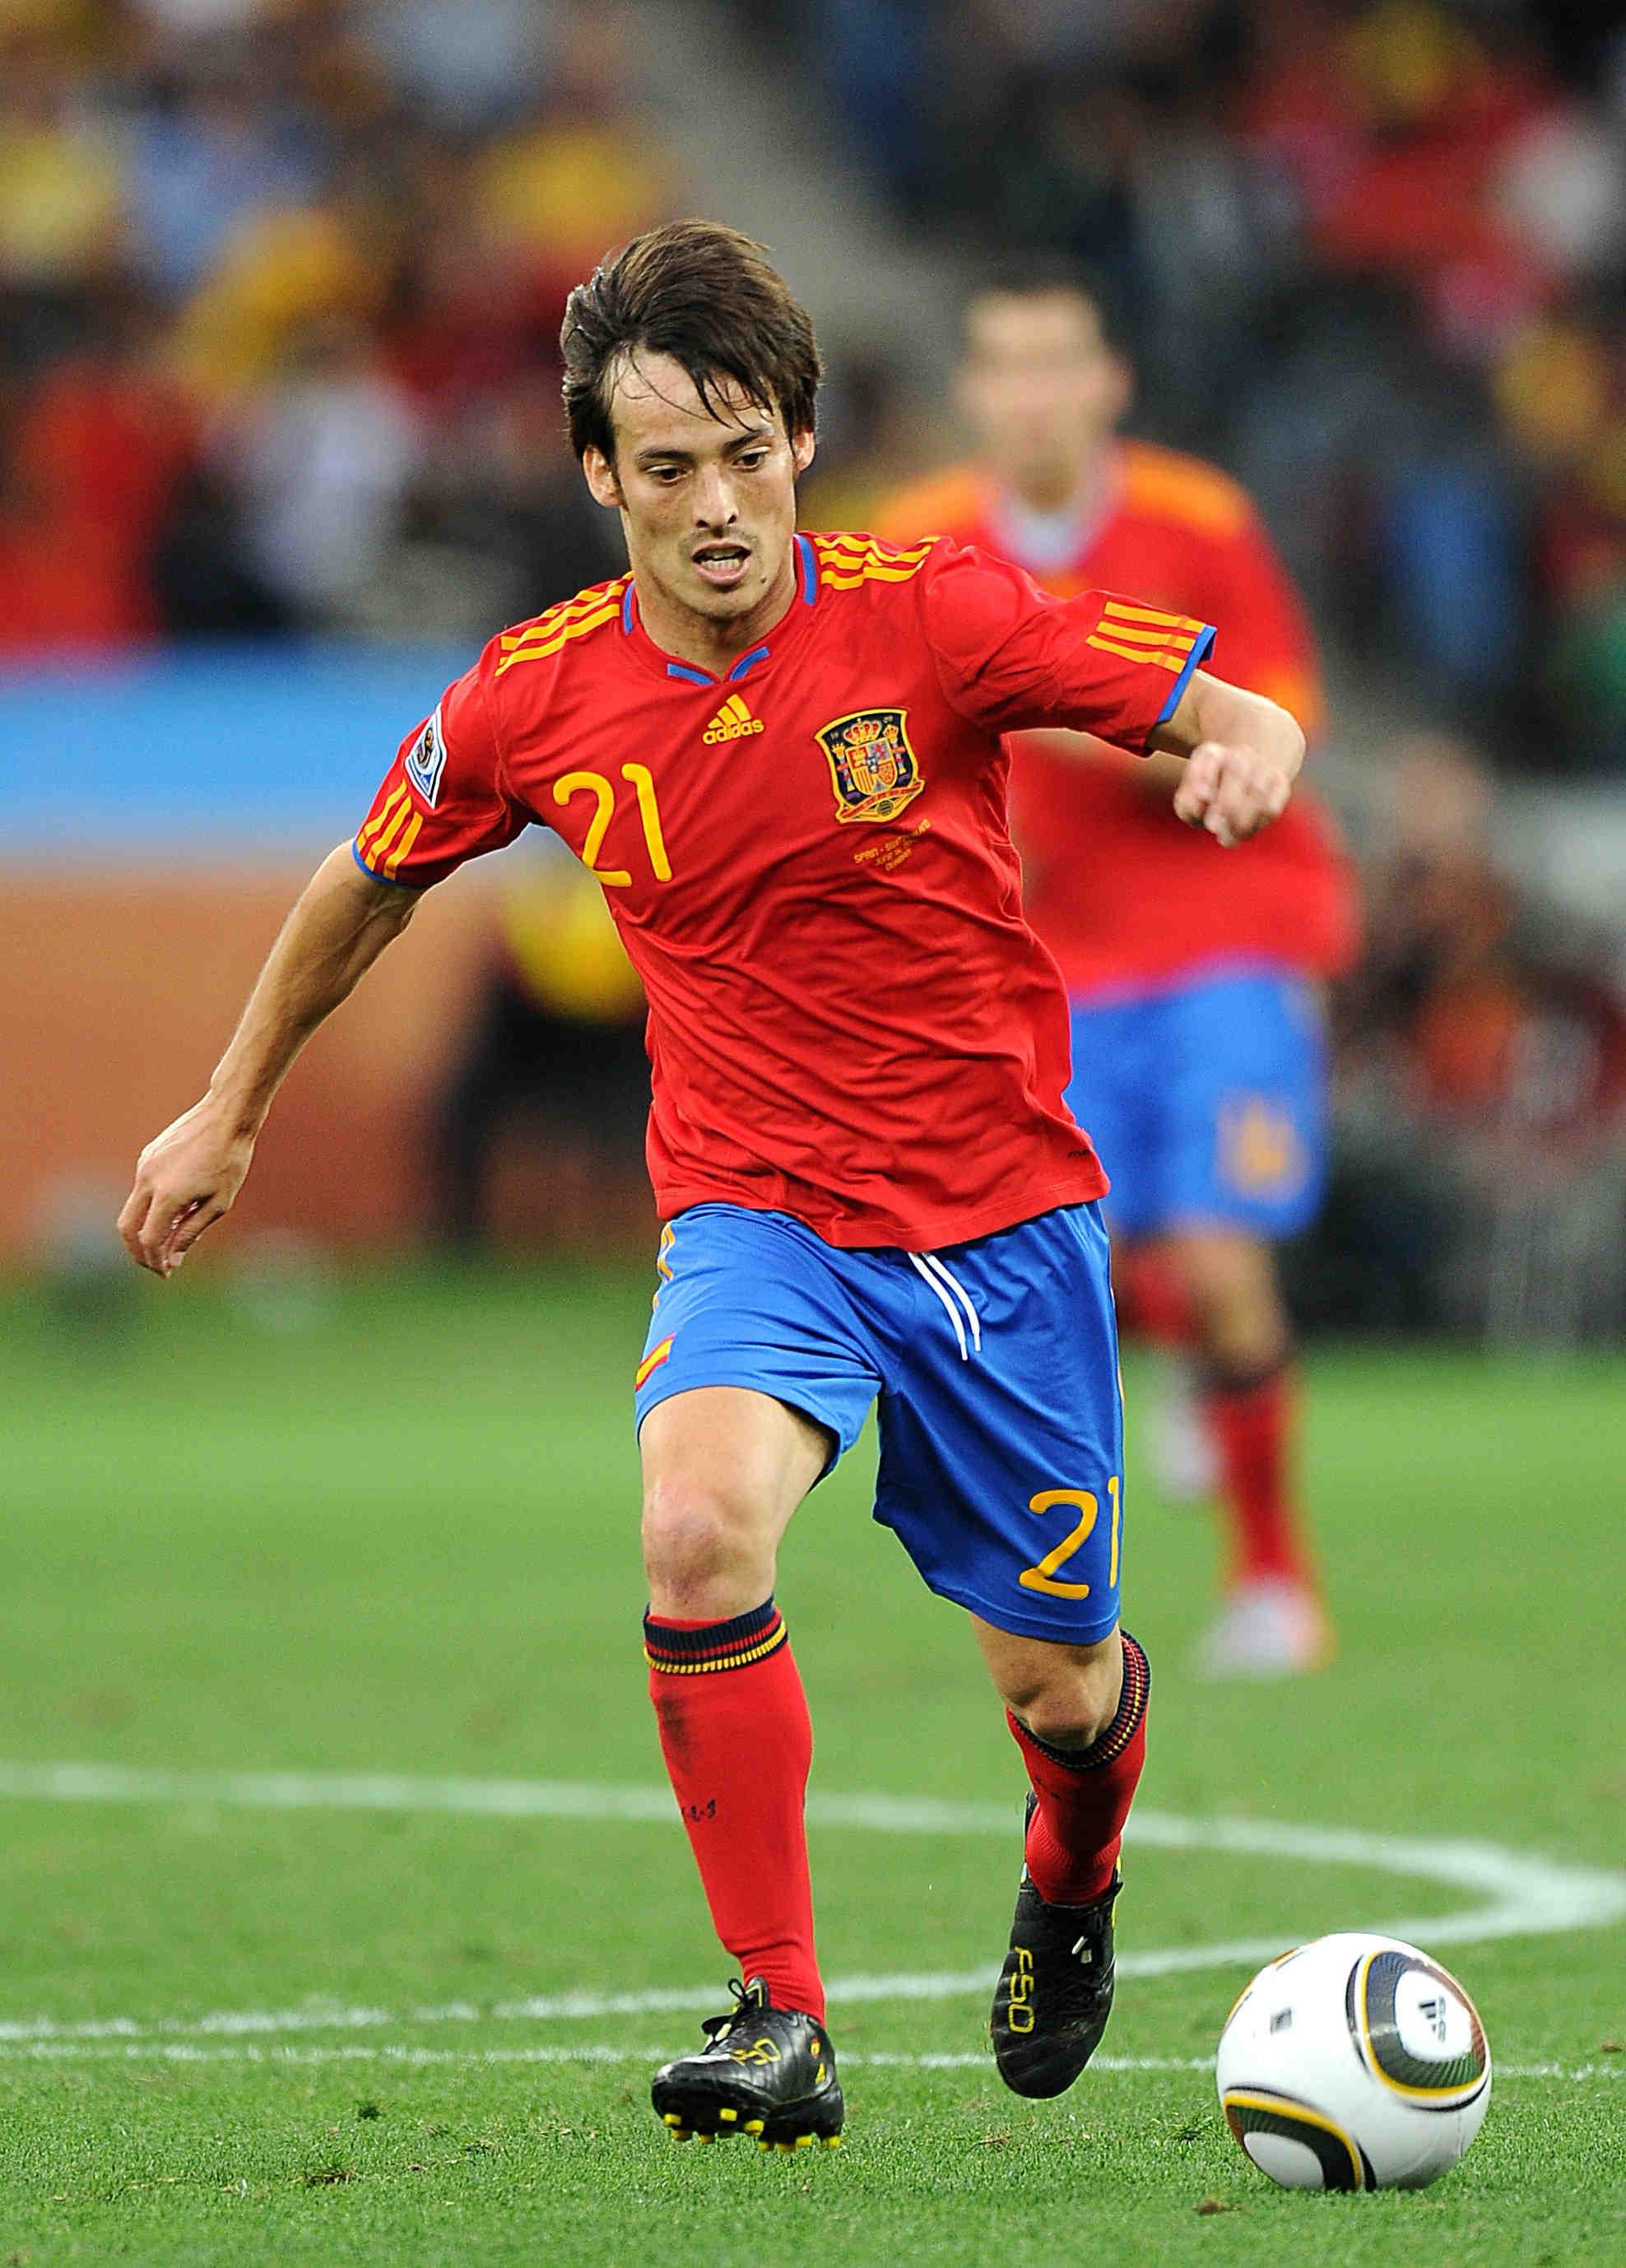 Silva embodies Spain's golden era